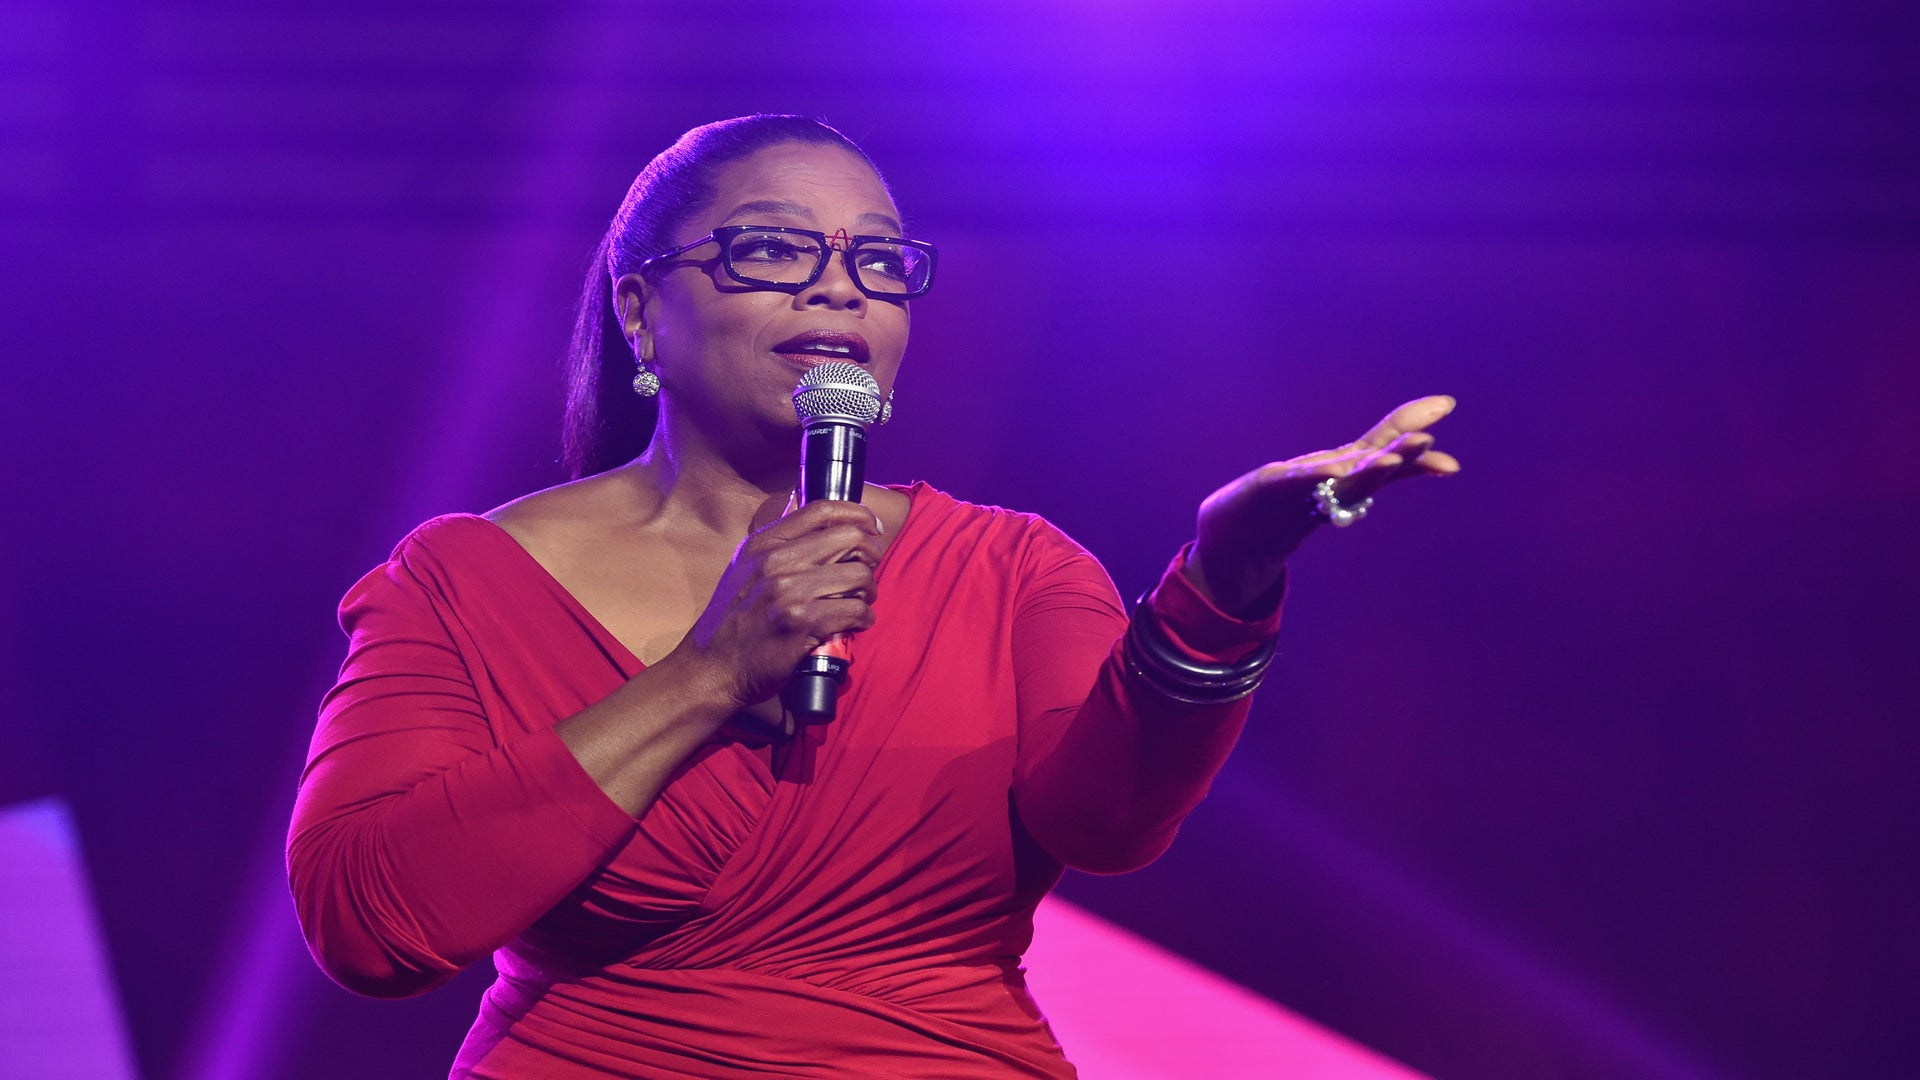 We All Know Oprah Is Everything, But She Laid Us Out At the ESSENCE Festival